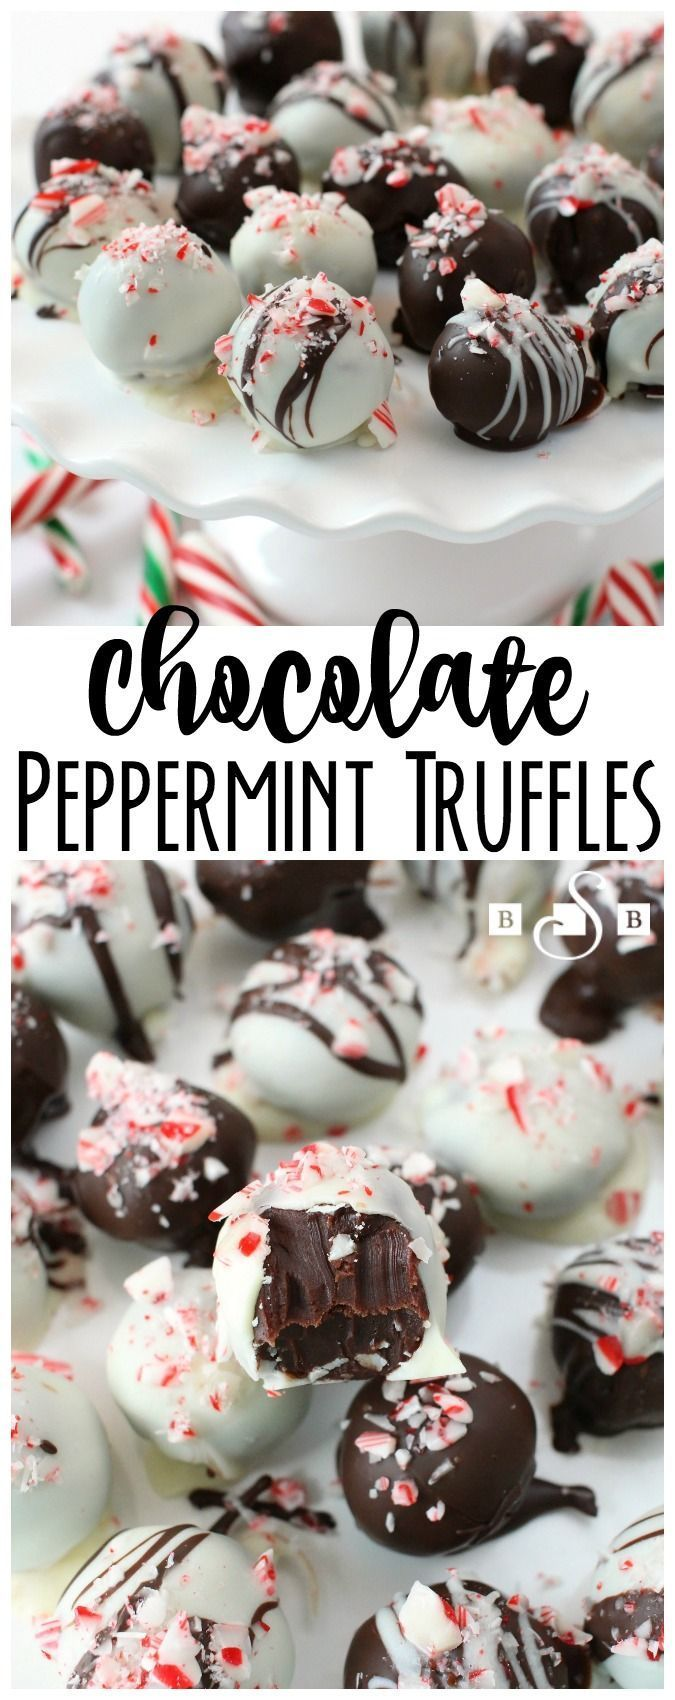 Chocolate Peppermint Truffles - Chocolate and peppermint is the perfect winter combination #winter #chocolate #peppermint